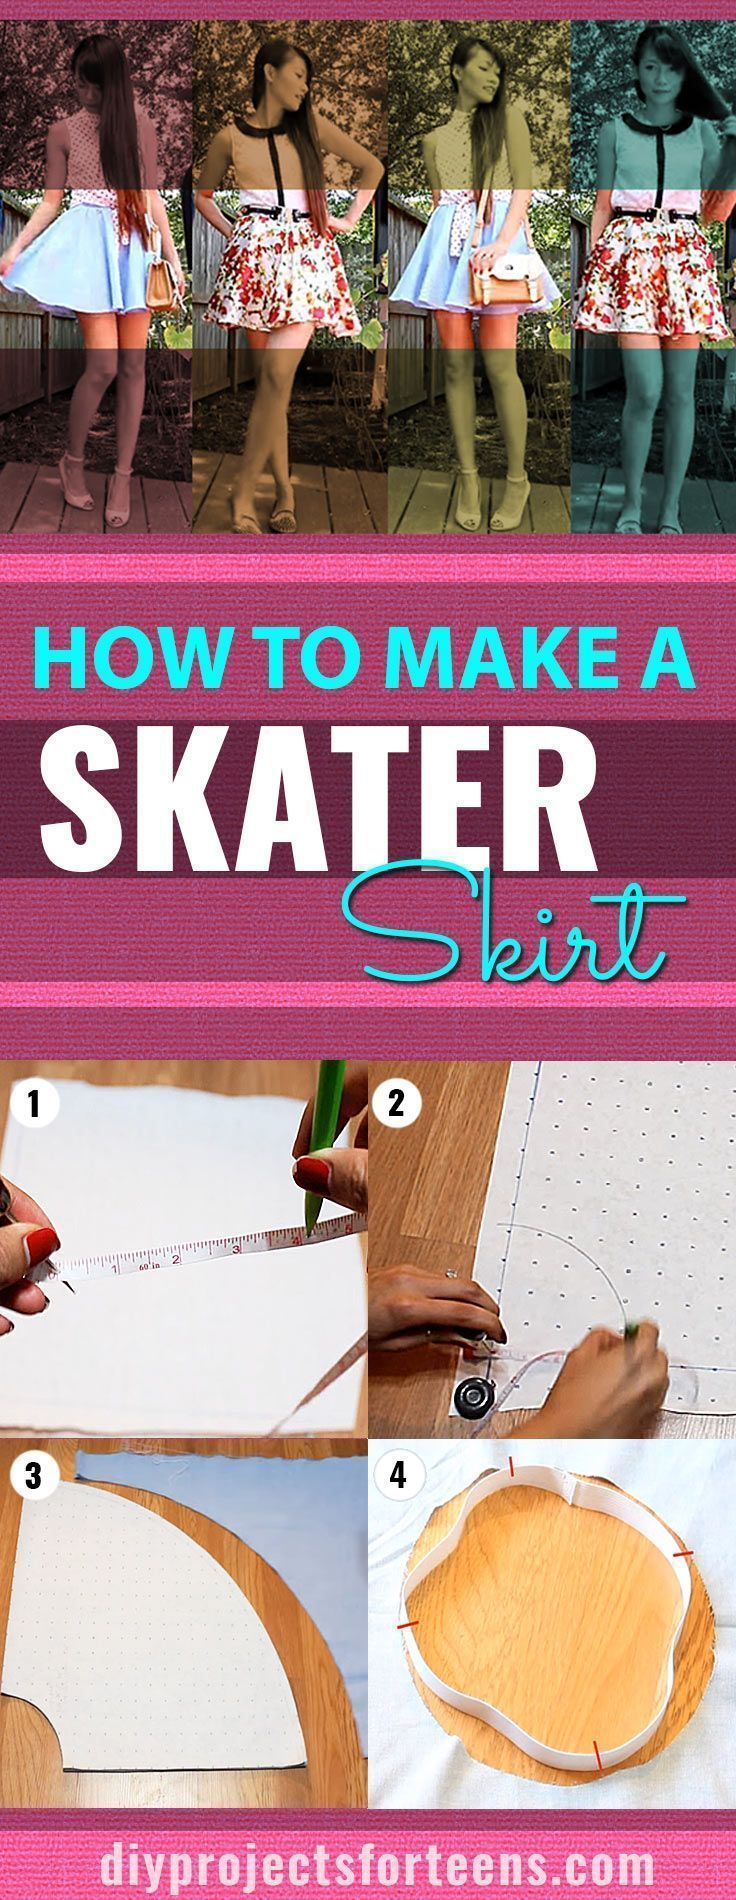 Sewing crafts for teens - Diy Fashion For Teens Cool Skater Skirt Tutorial Shows You An Easy Sewing Idea For